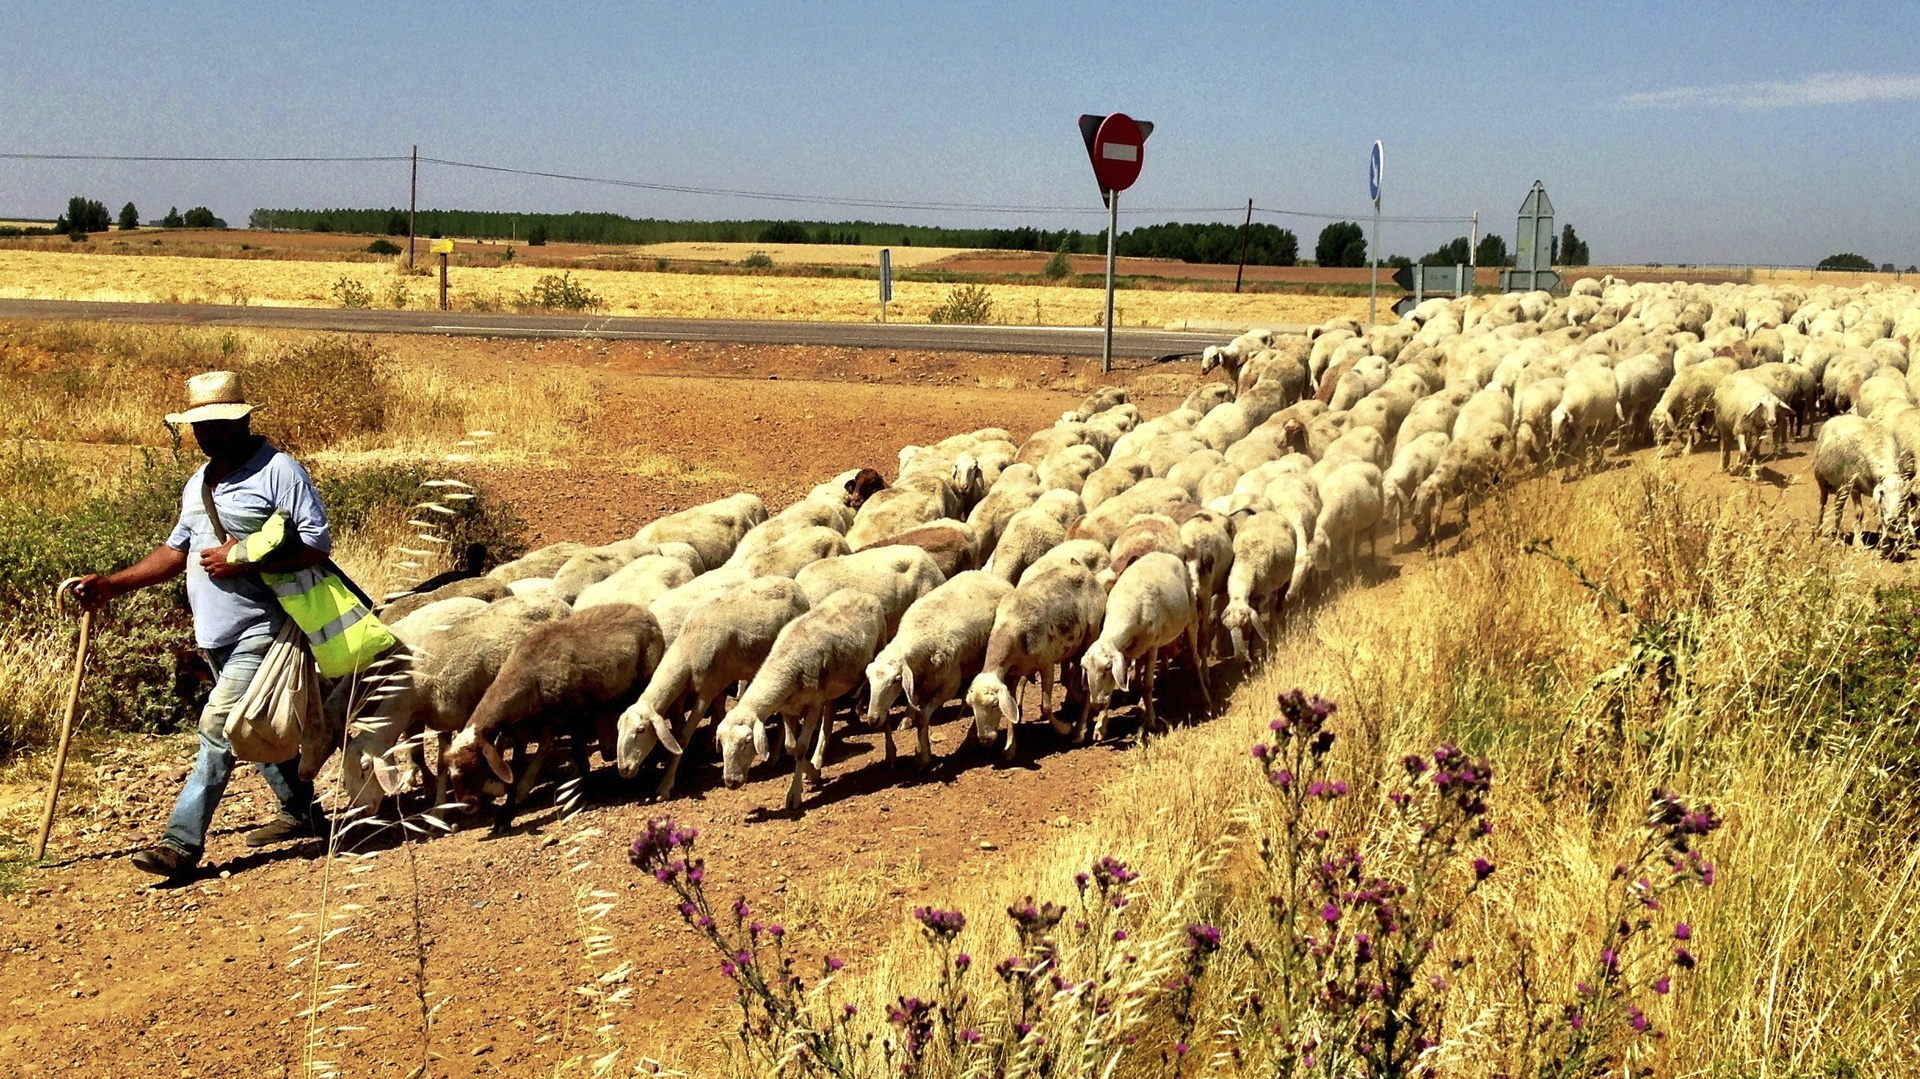 Traffic Jam on the Camino